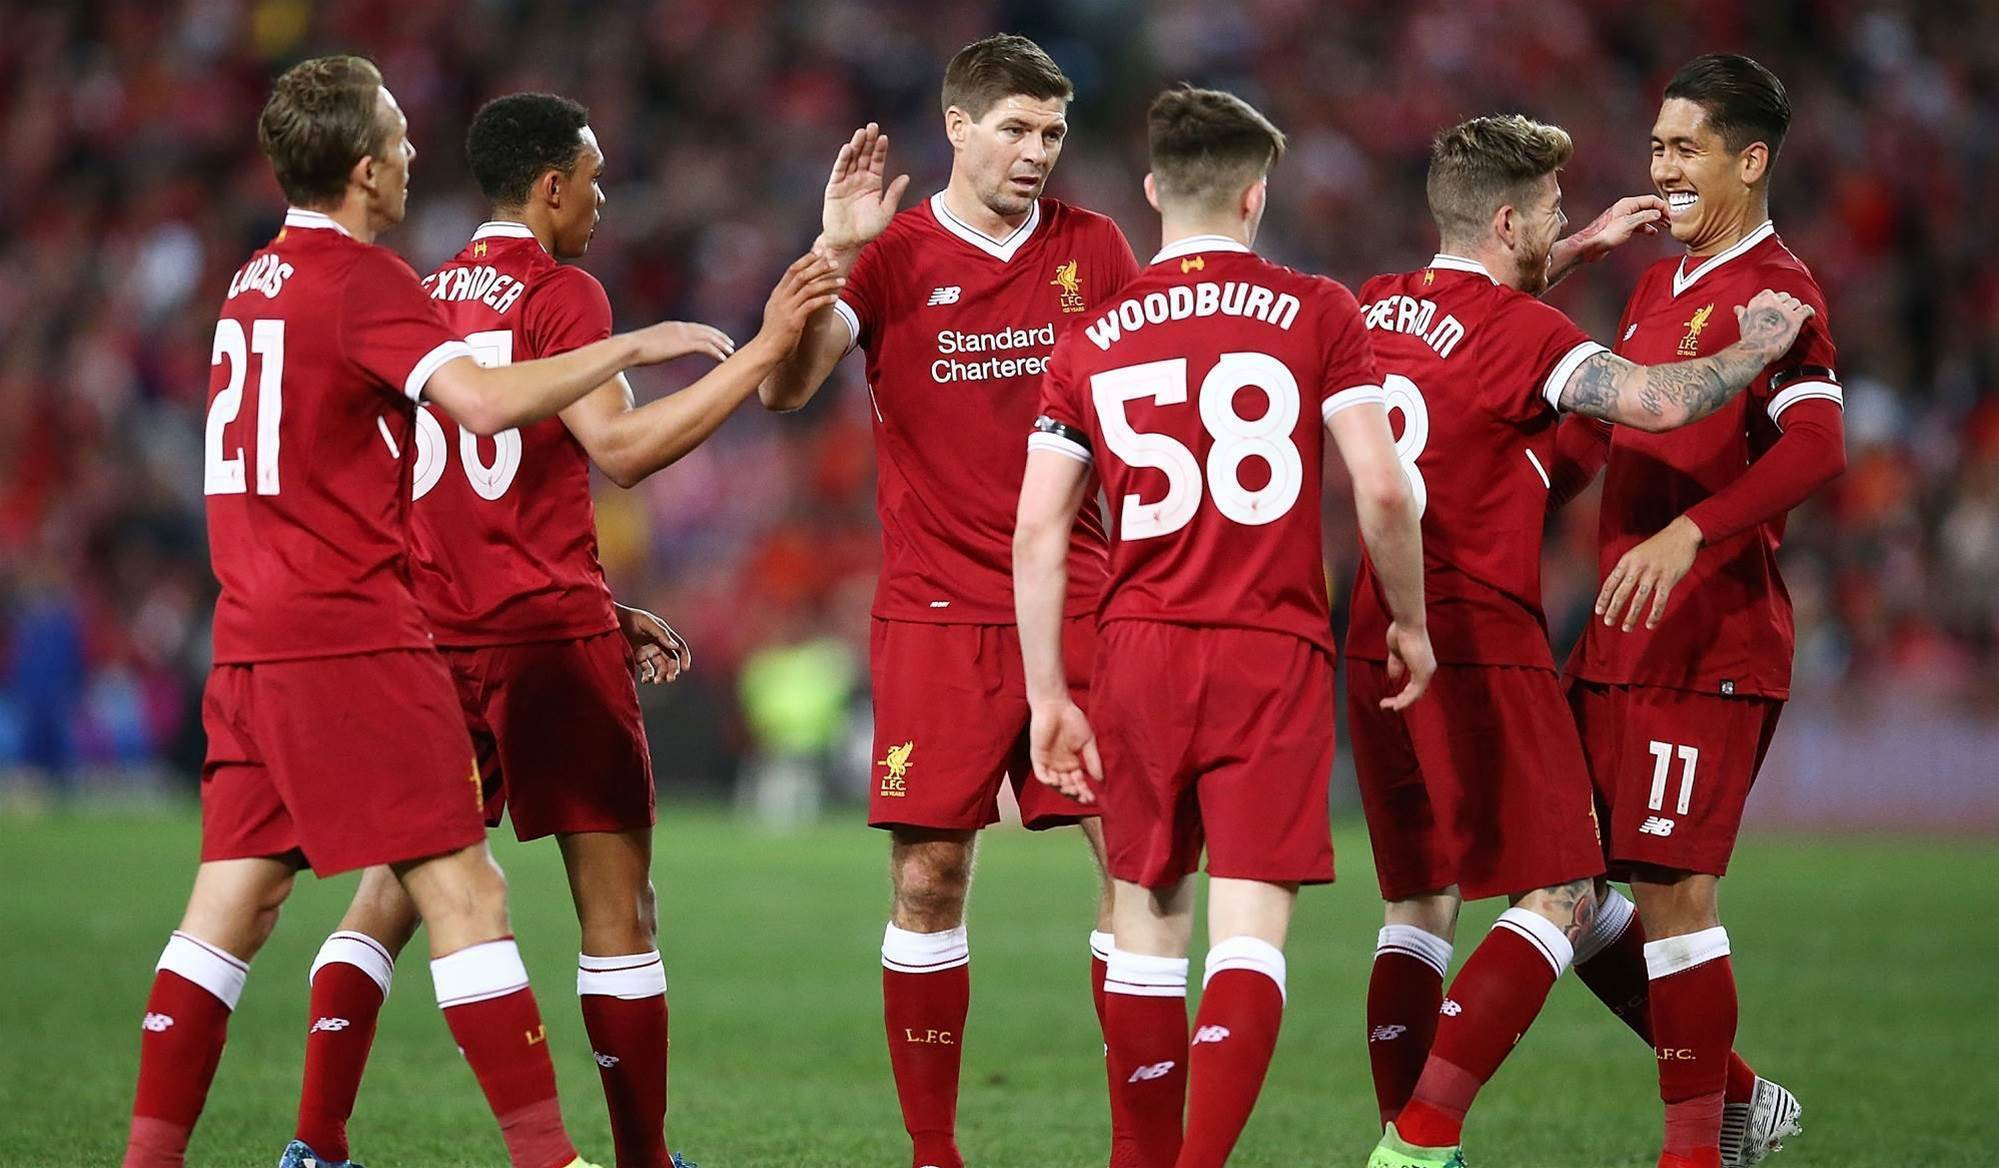 Gerrard inspires Liverpool win over Sydney